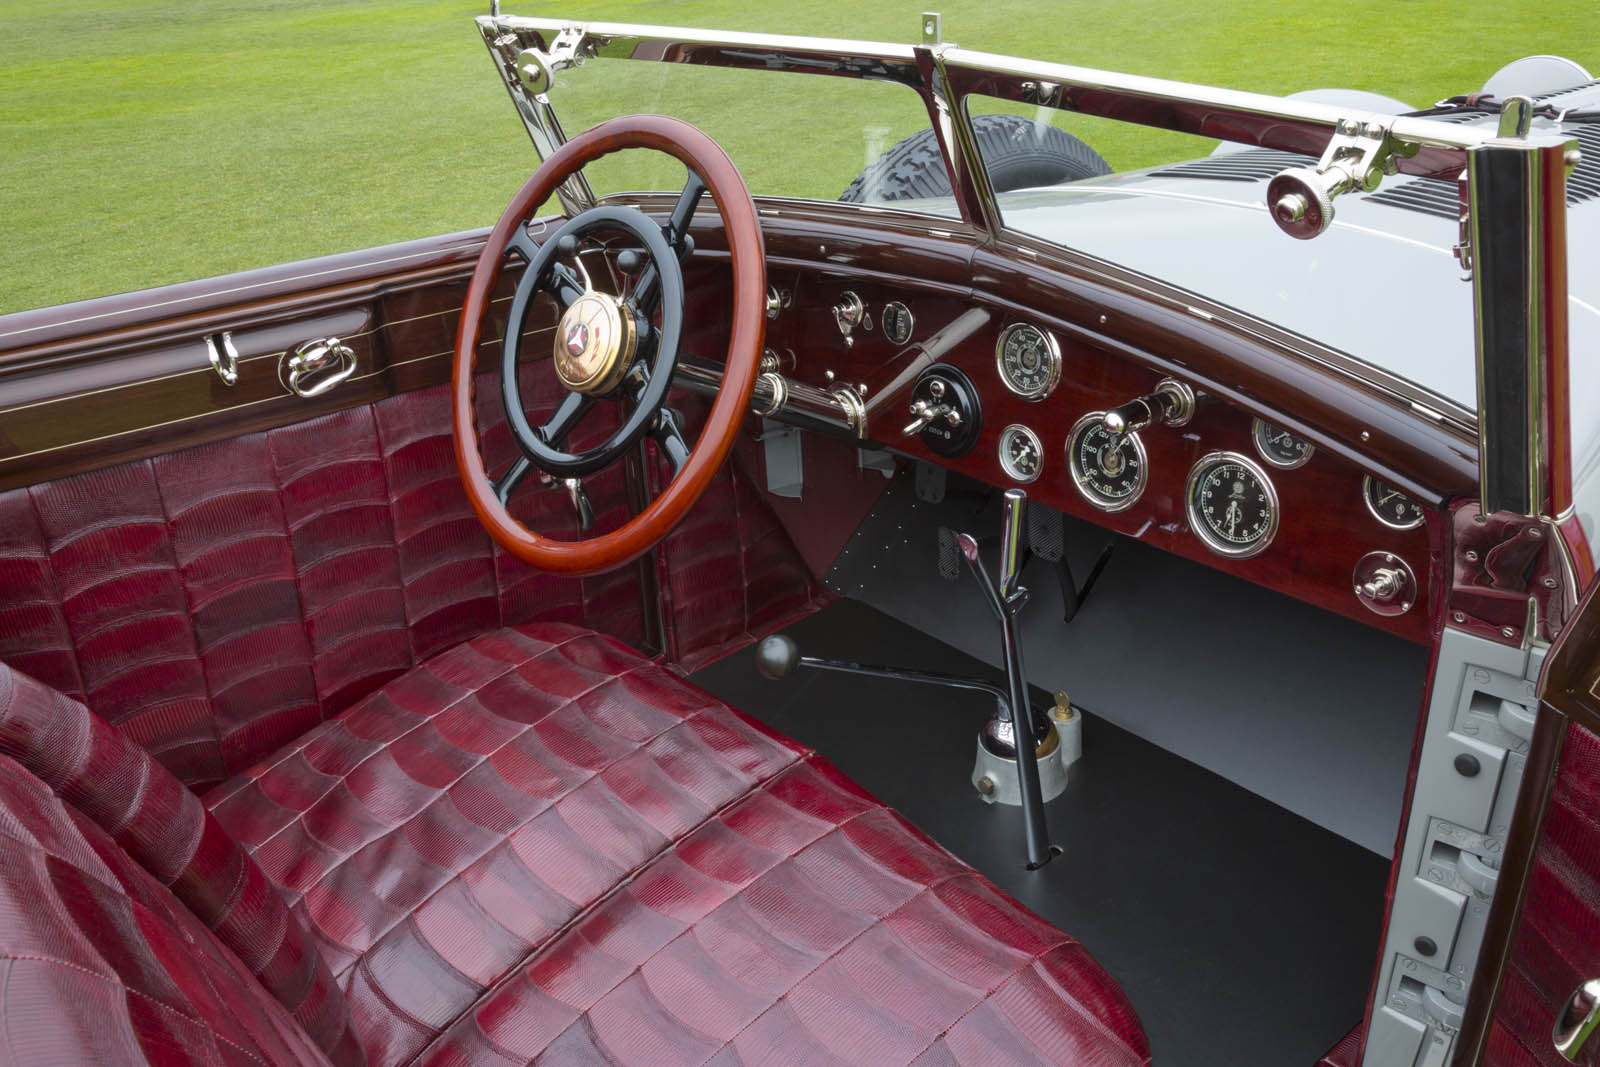 Mercedes-Benz 680S Torpedo Roadster 1928 in auction (3)